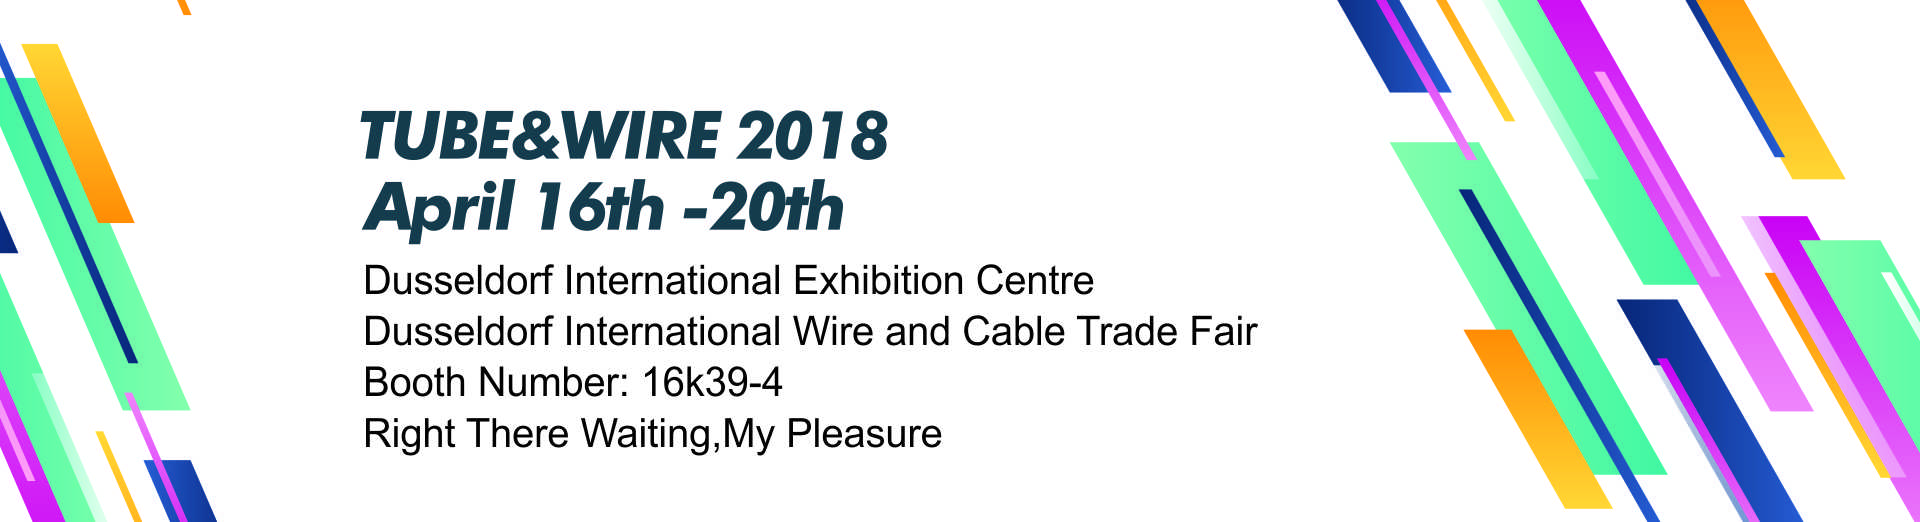 TUBE&WIRE2018-3